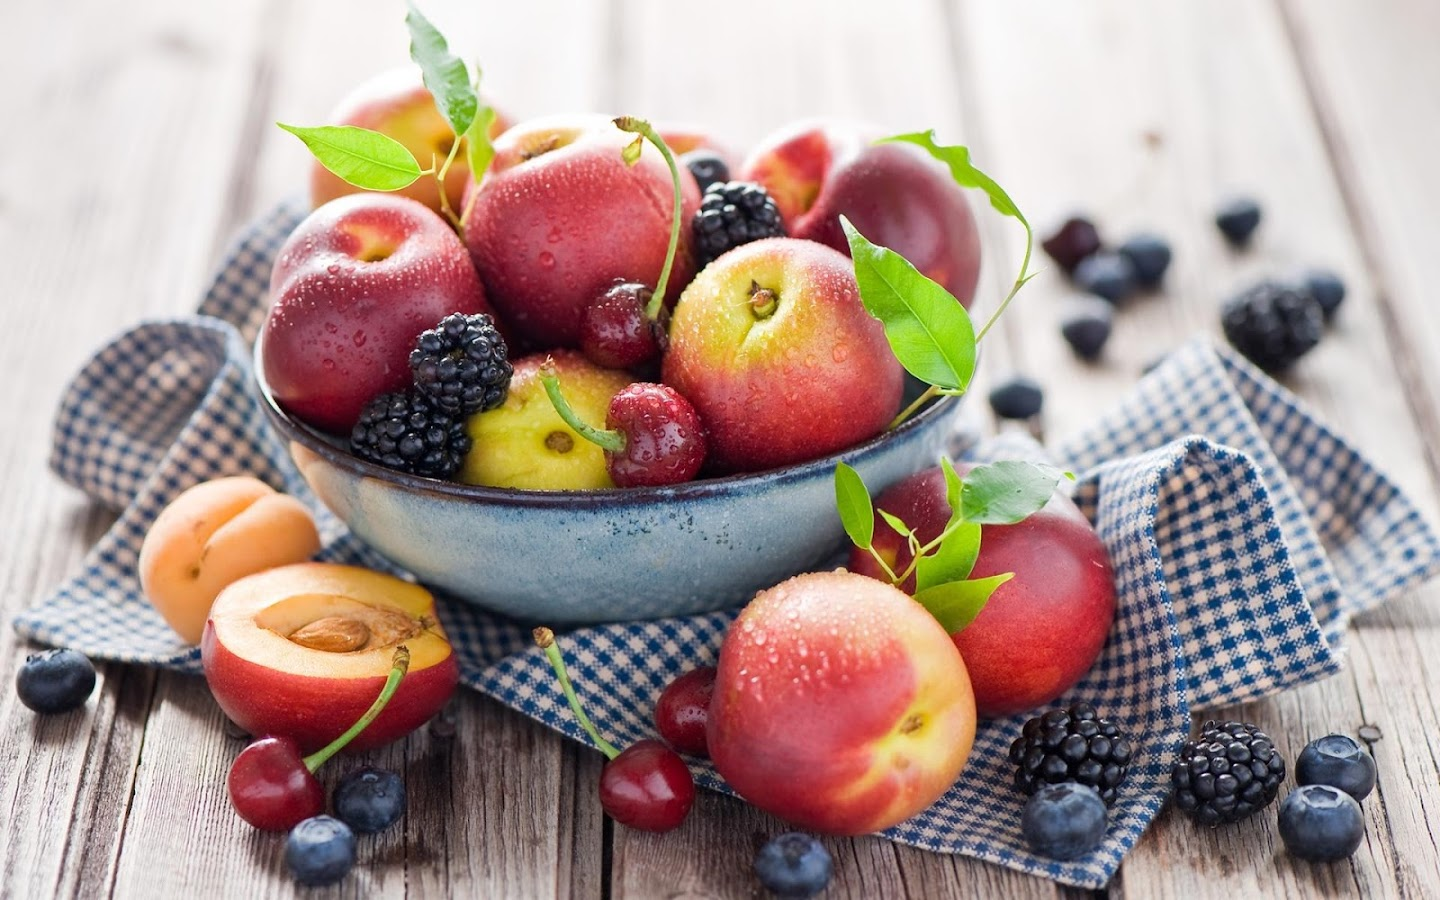 Fresh Fruit Wallpaper HD Android Apps on Google Play